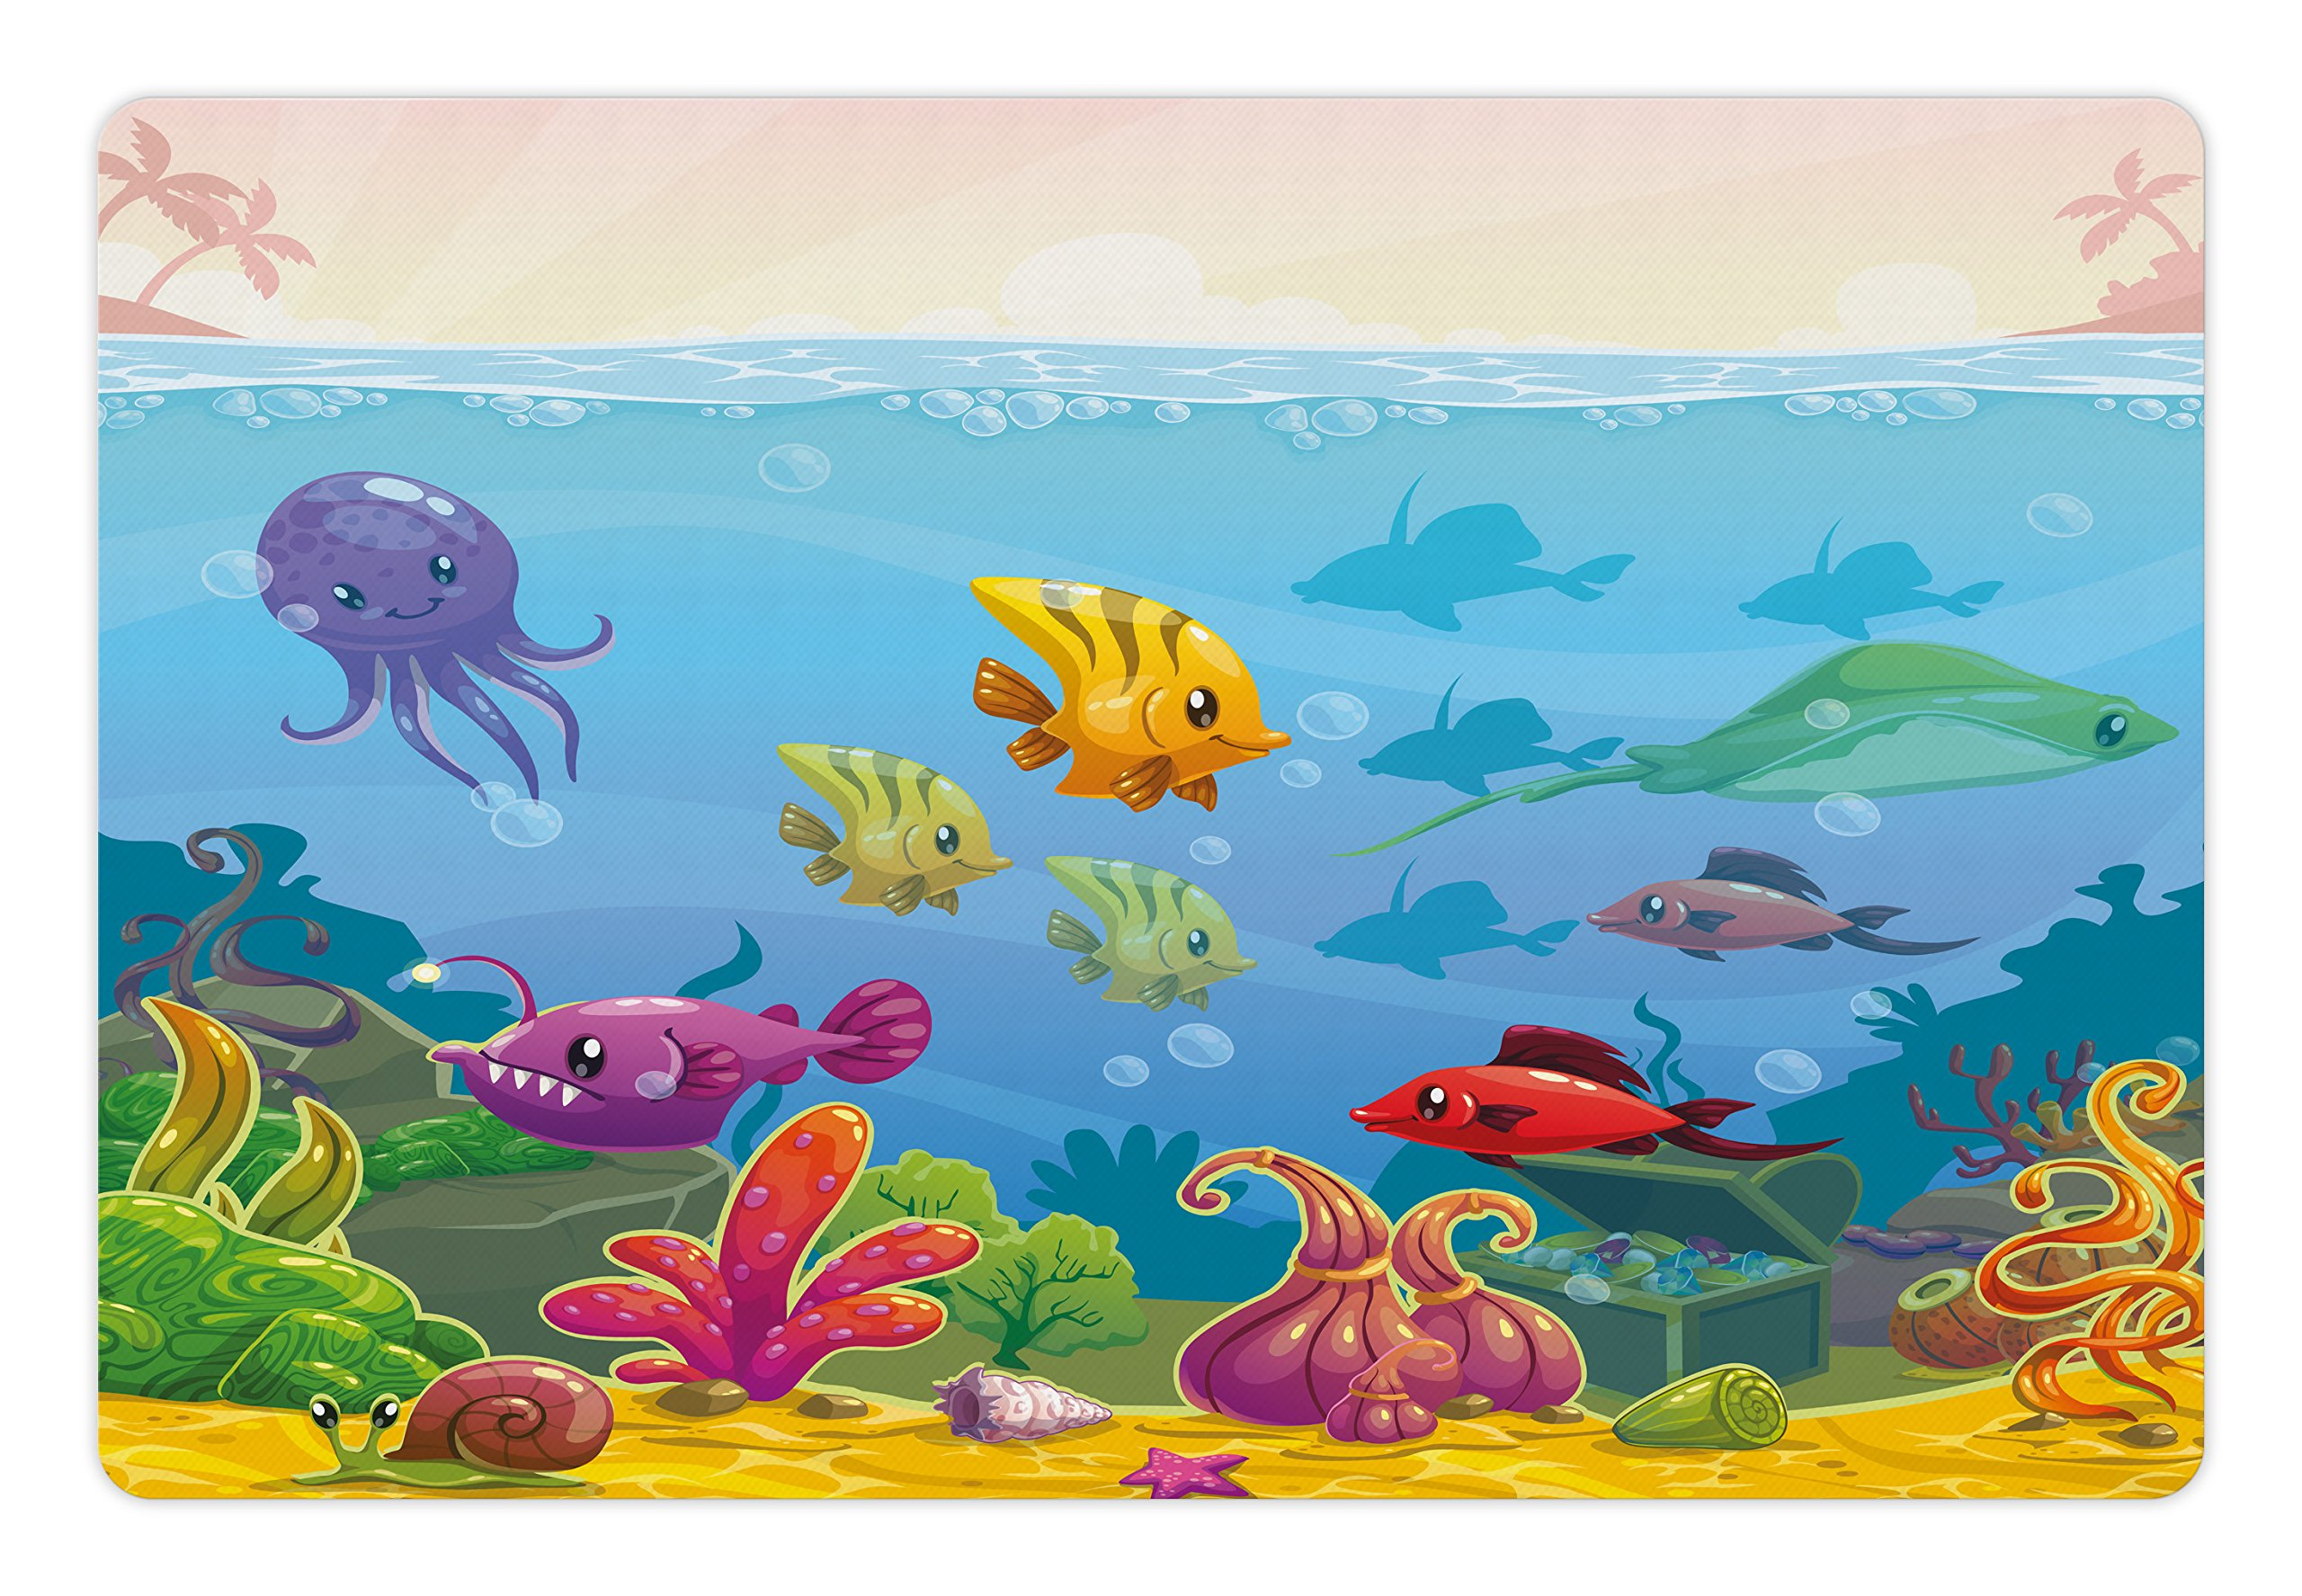 Lunarable Aquarium Pet Mat for Food and Water, Funny Cartoon Style Underwater Scenery with Various Animals and Treasure Chest, Rectangle Non-Slip Rubber Mat for Dogs and Cats, Multicolor